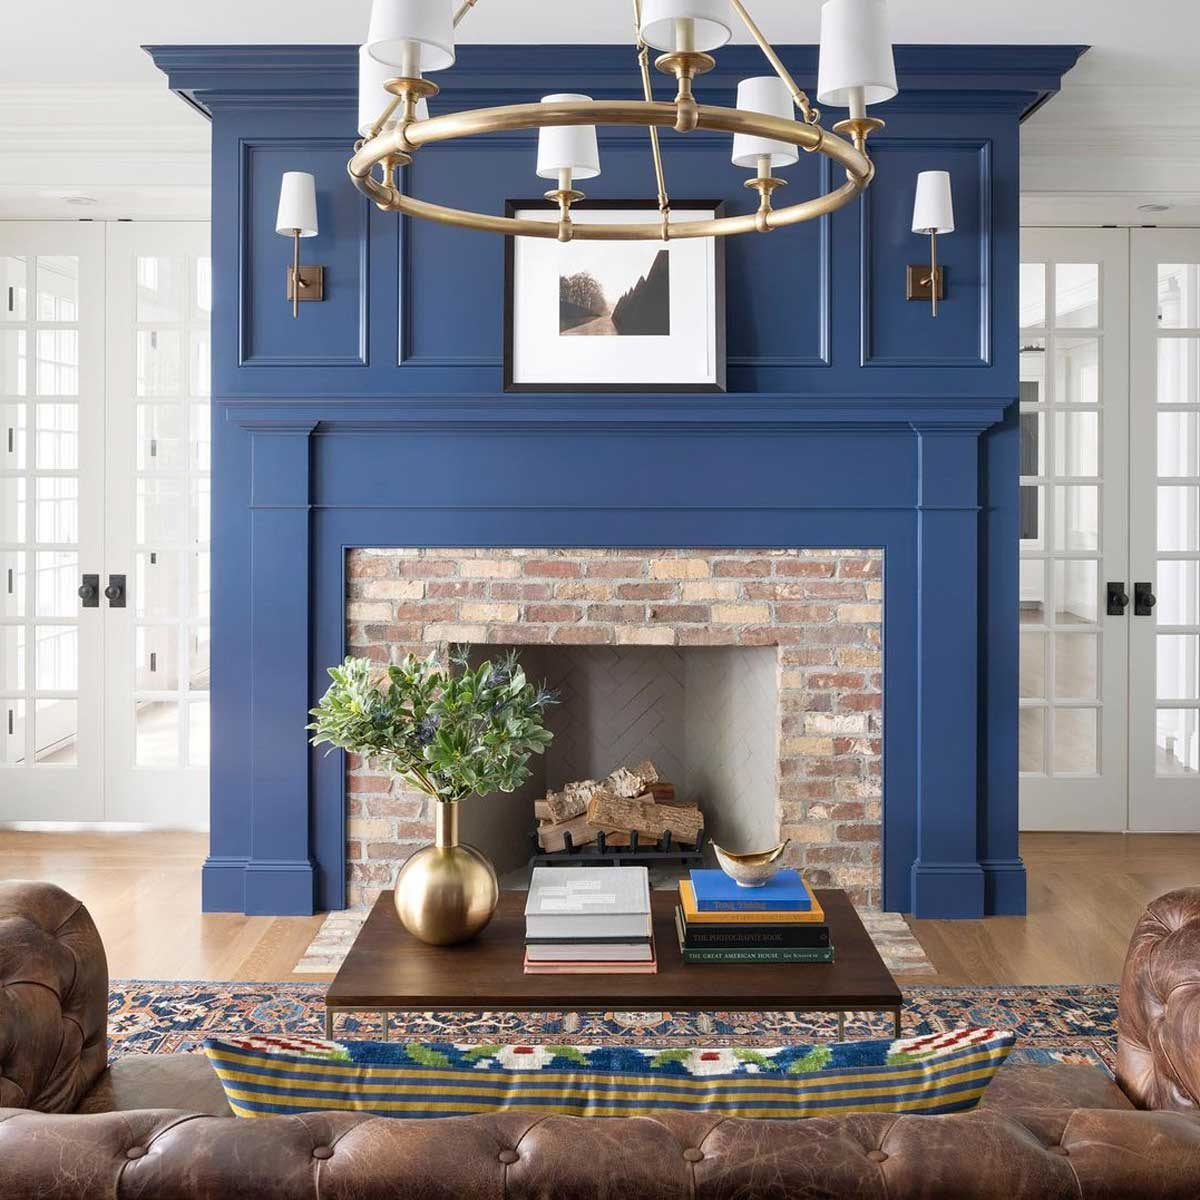 Fireplace Decor 130803172 174694654360338 3985605301599415107 N